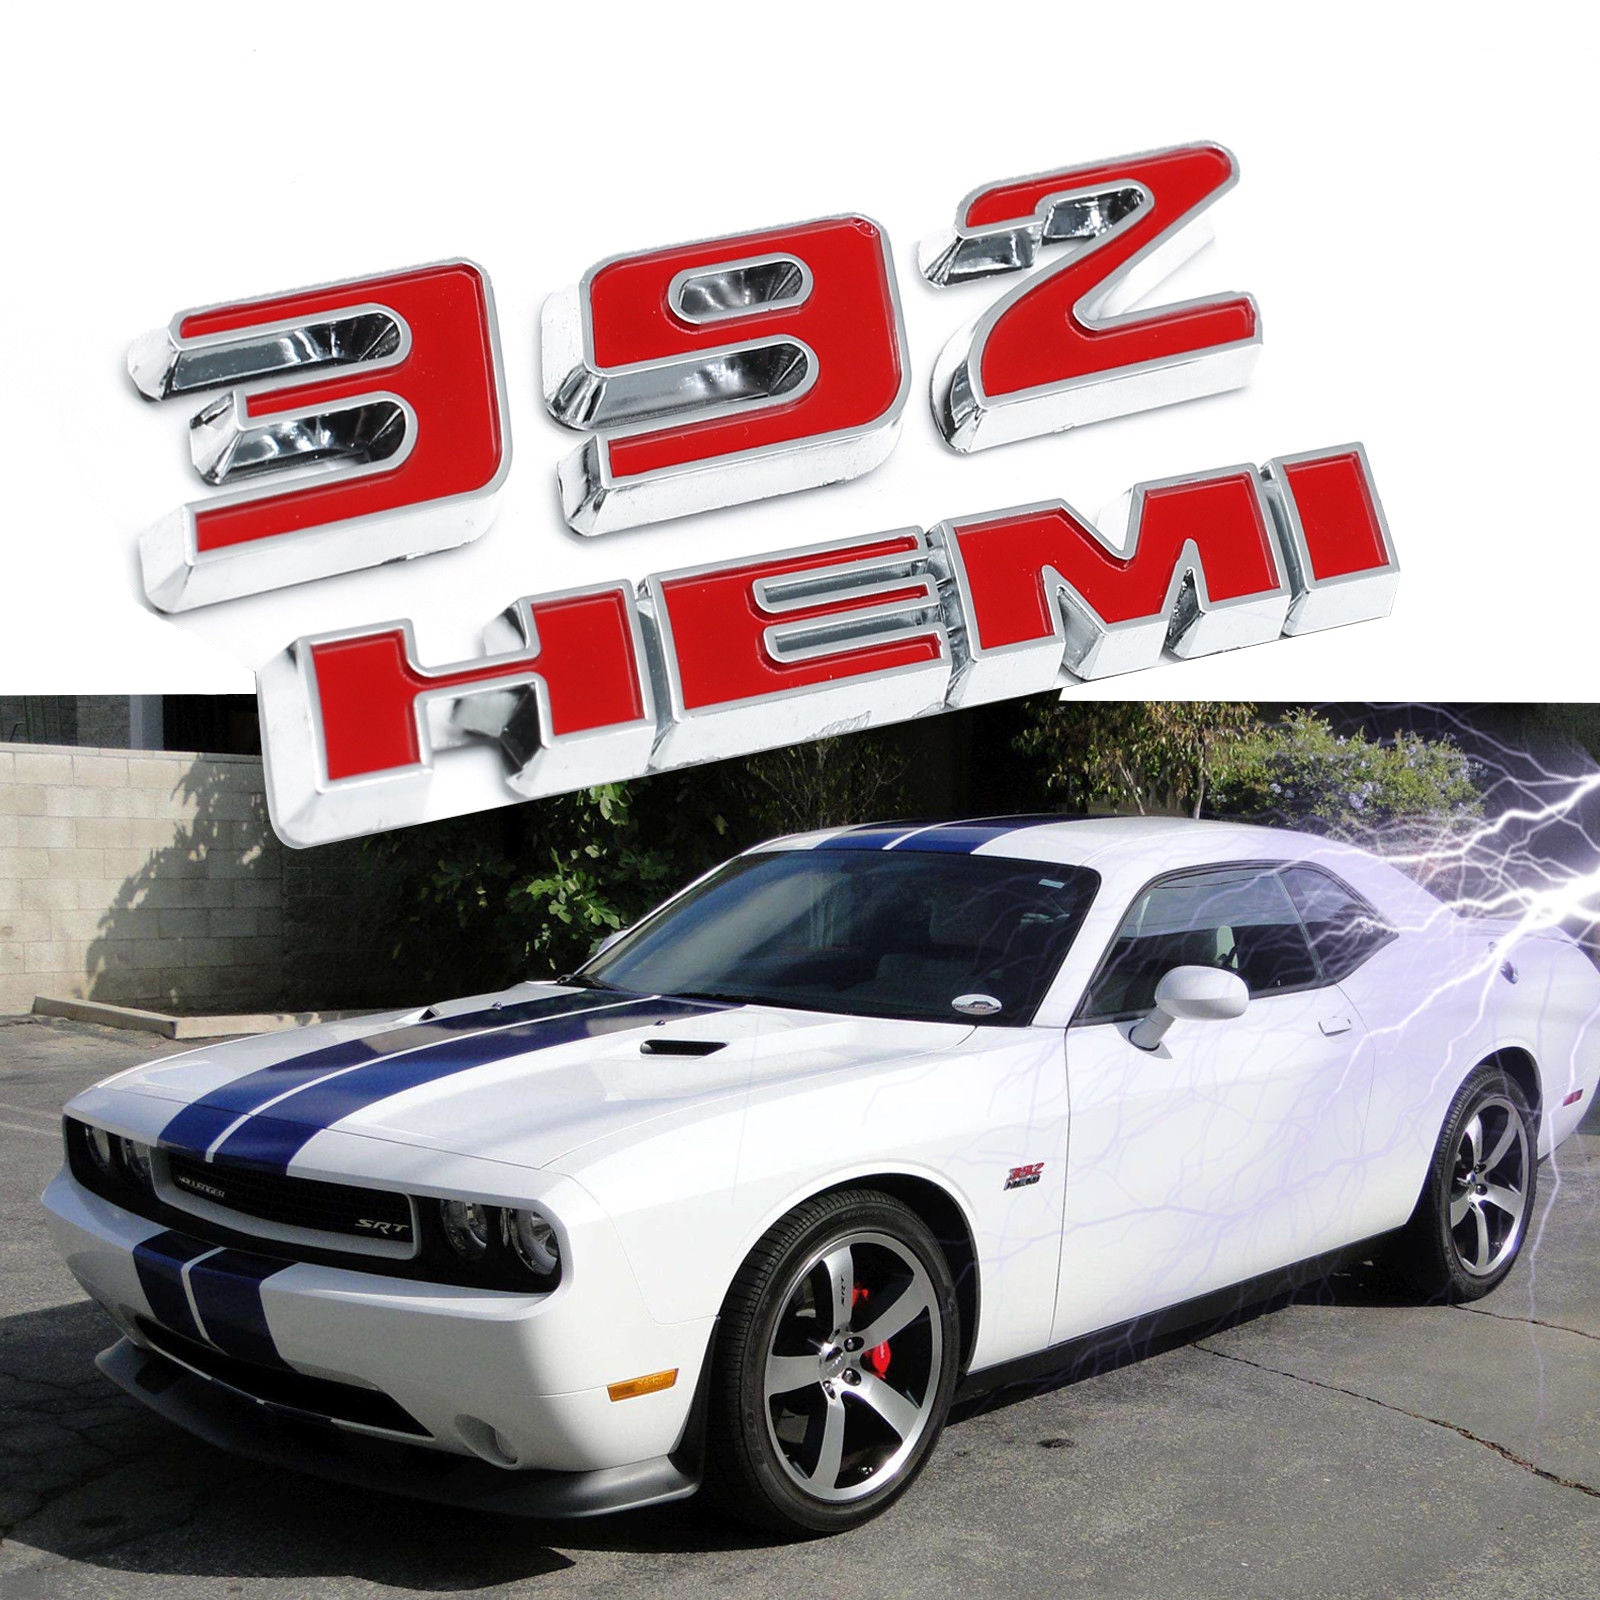 1x 392 hemi emblem badge plate decal with sticker for dodge challenger srt 6 4l srt8